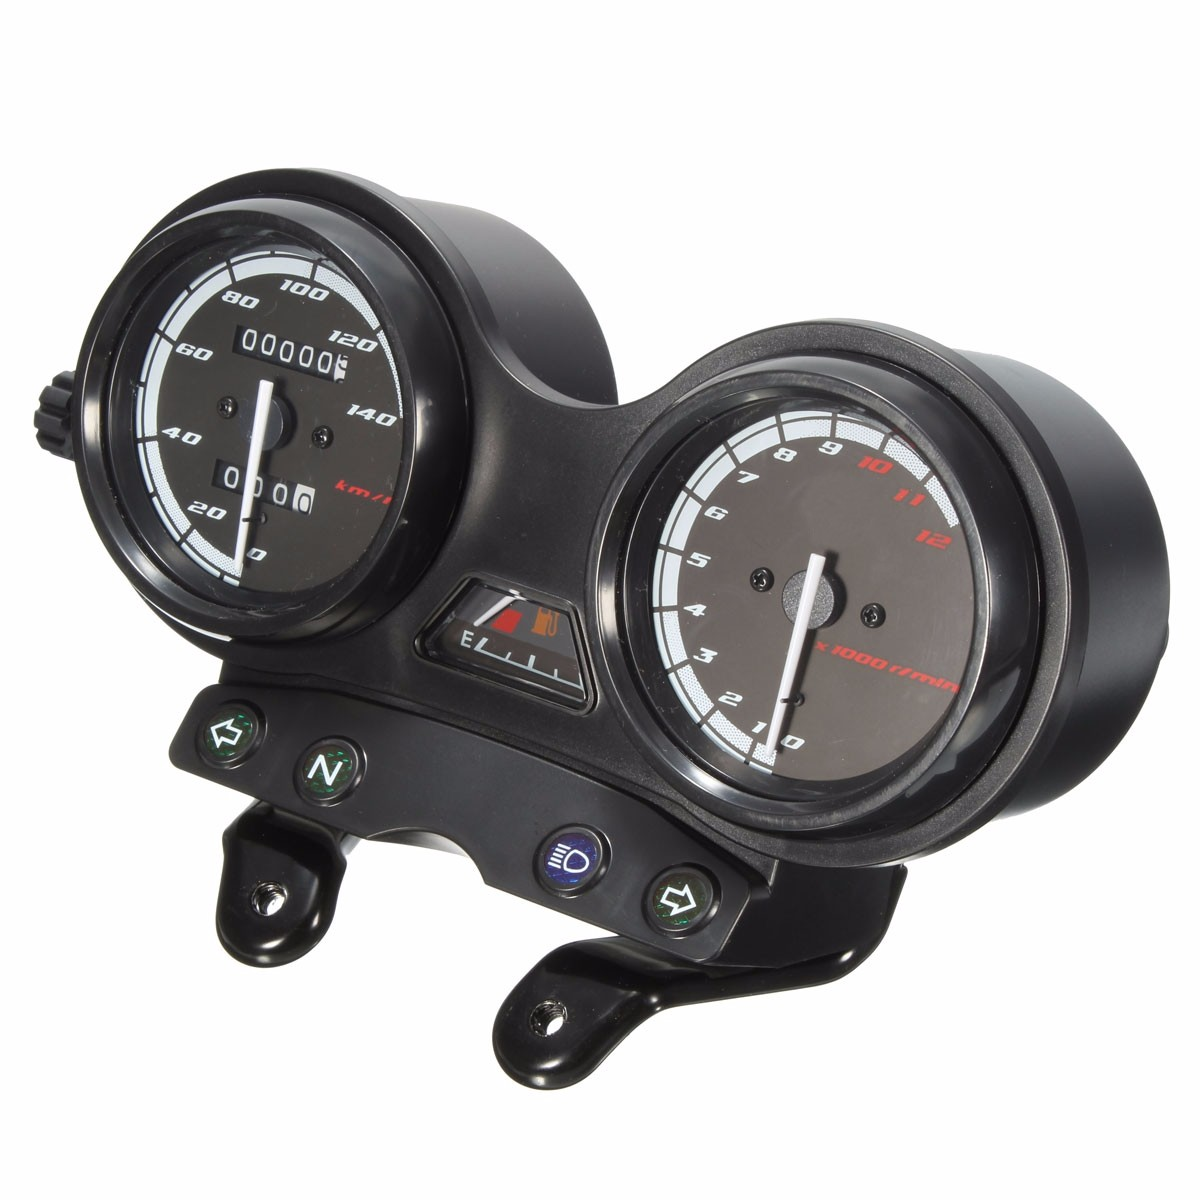 Motorcycle Instrument Panel : Rpm motorcycle lcd odometer speedometer for yamaha